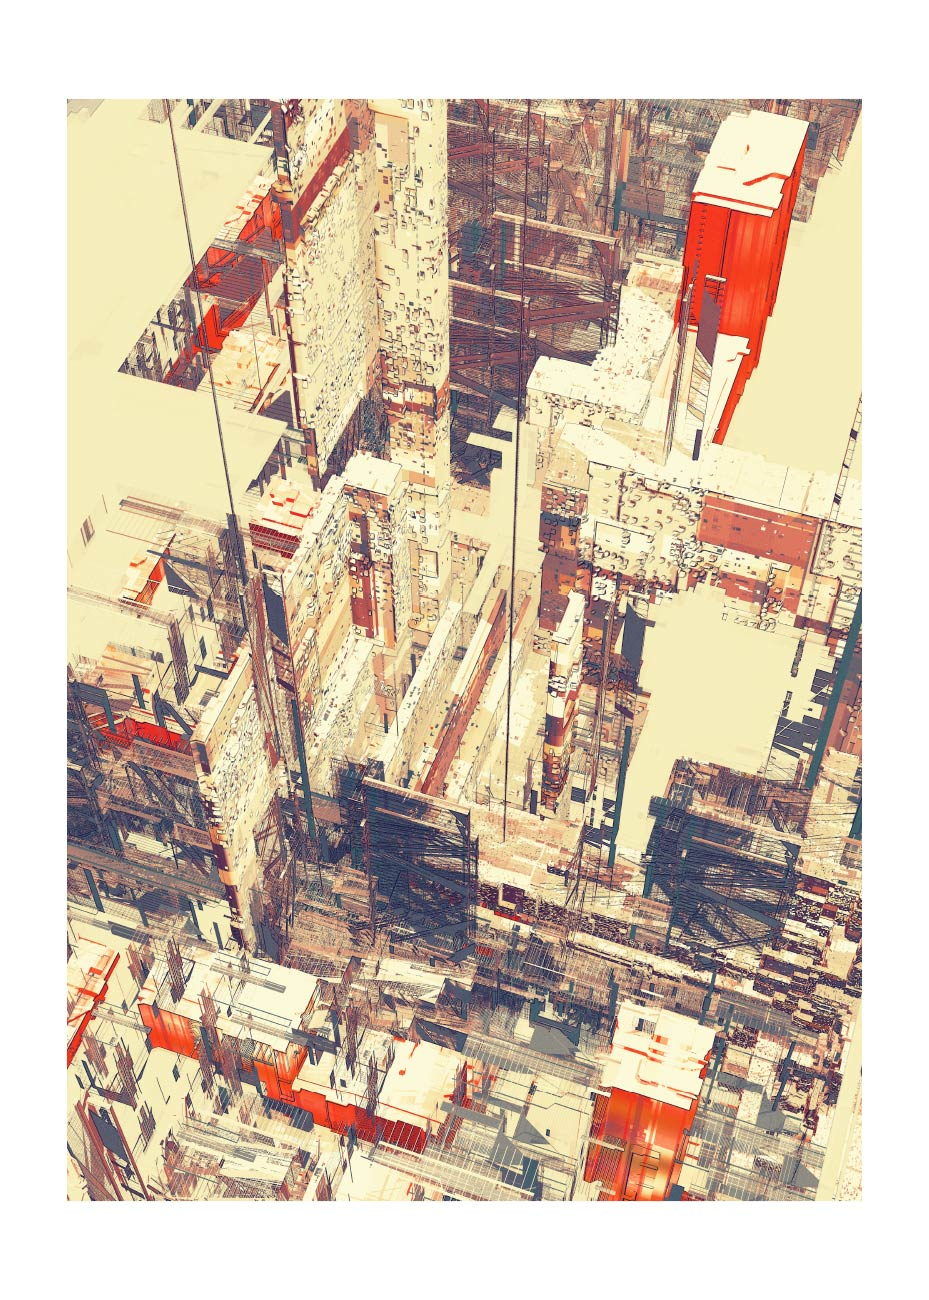 CITIES II 01